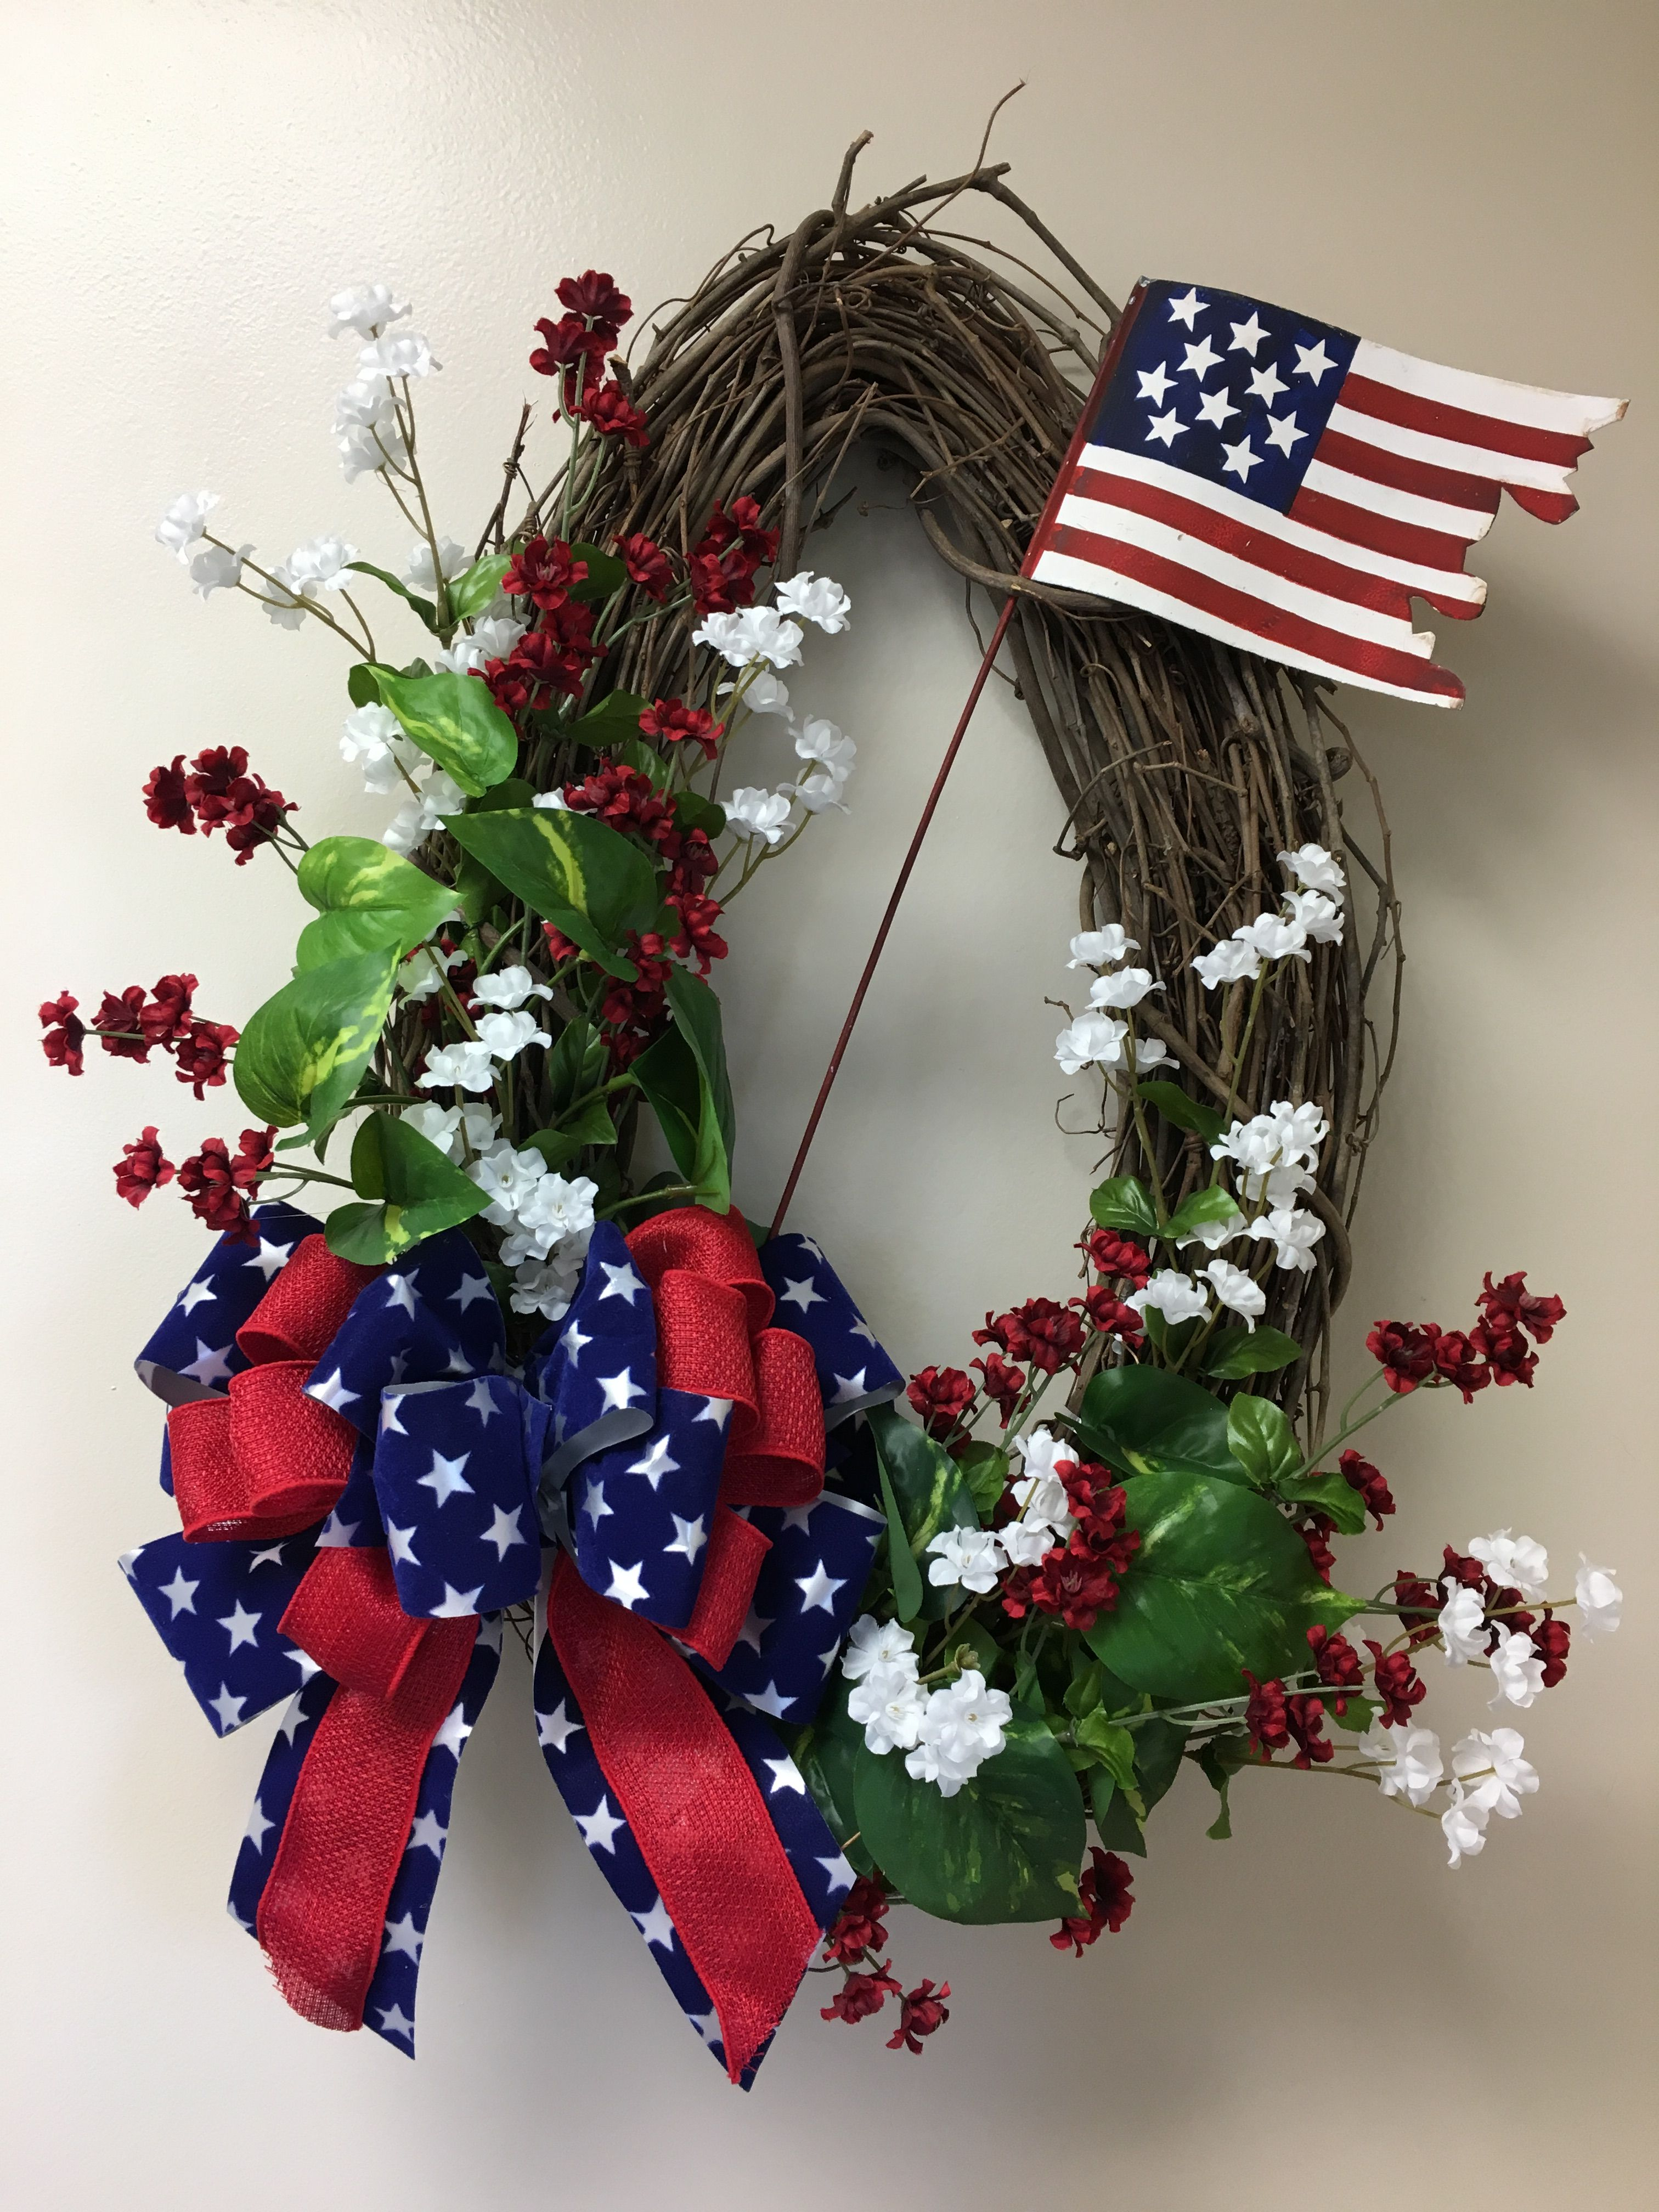 Patriotic wreath memorial day fourth of july front door wreath patriotic oval grapevine wreath with red and white flowers handmade red burlapblue star mightylinksfo